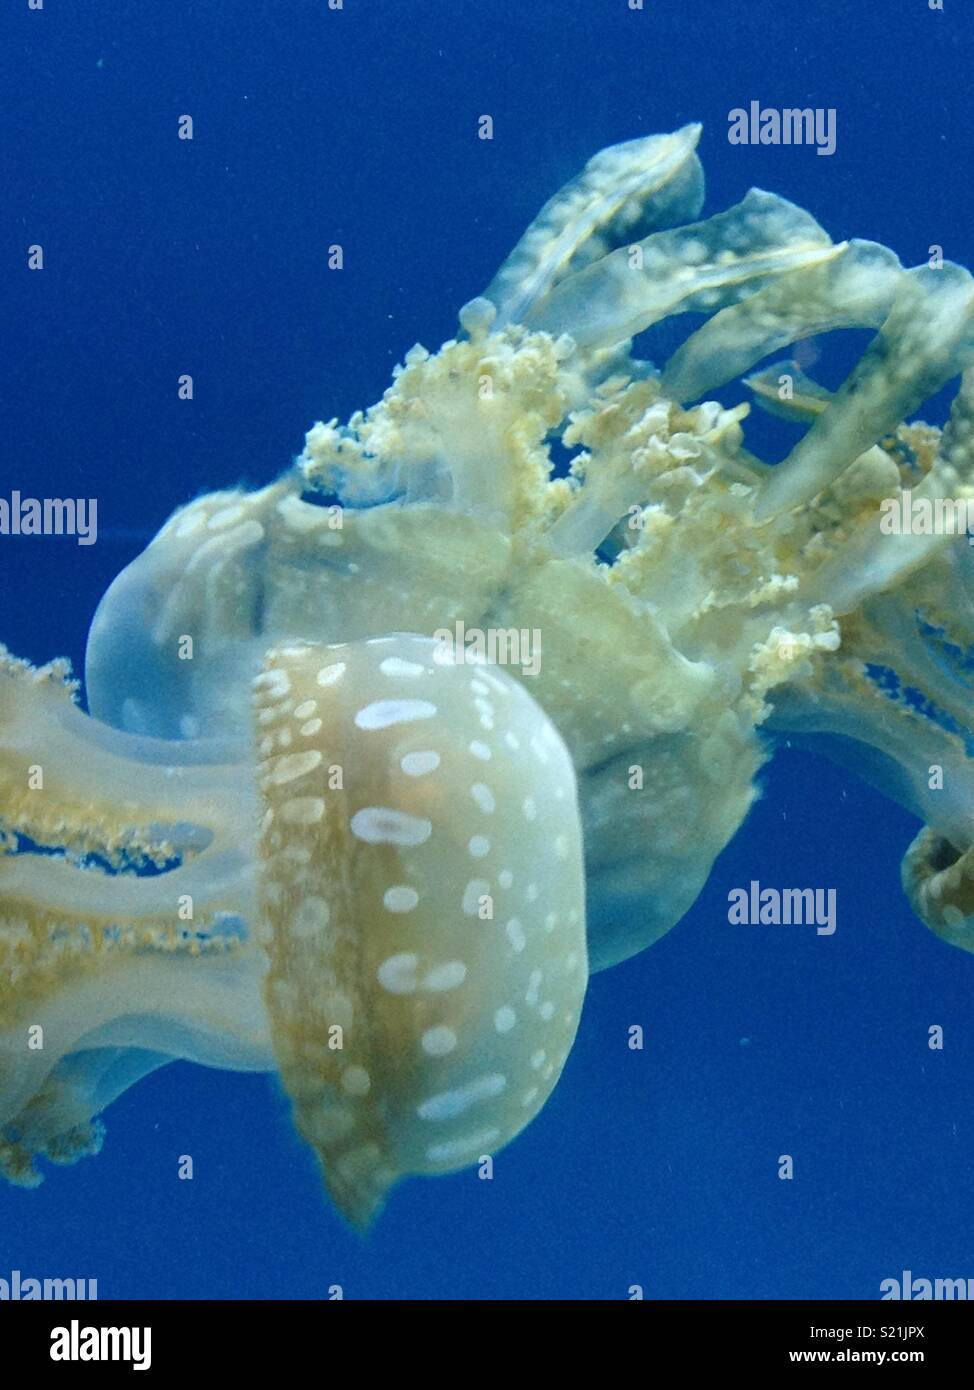 Jellyfish - Stock Image